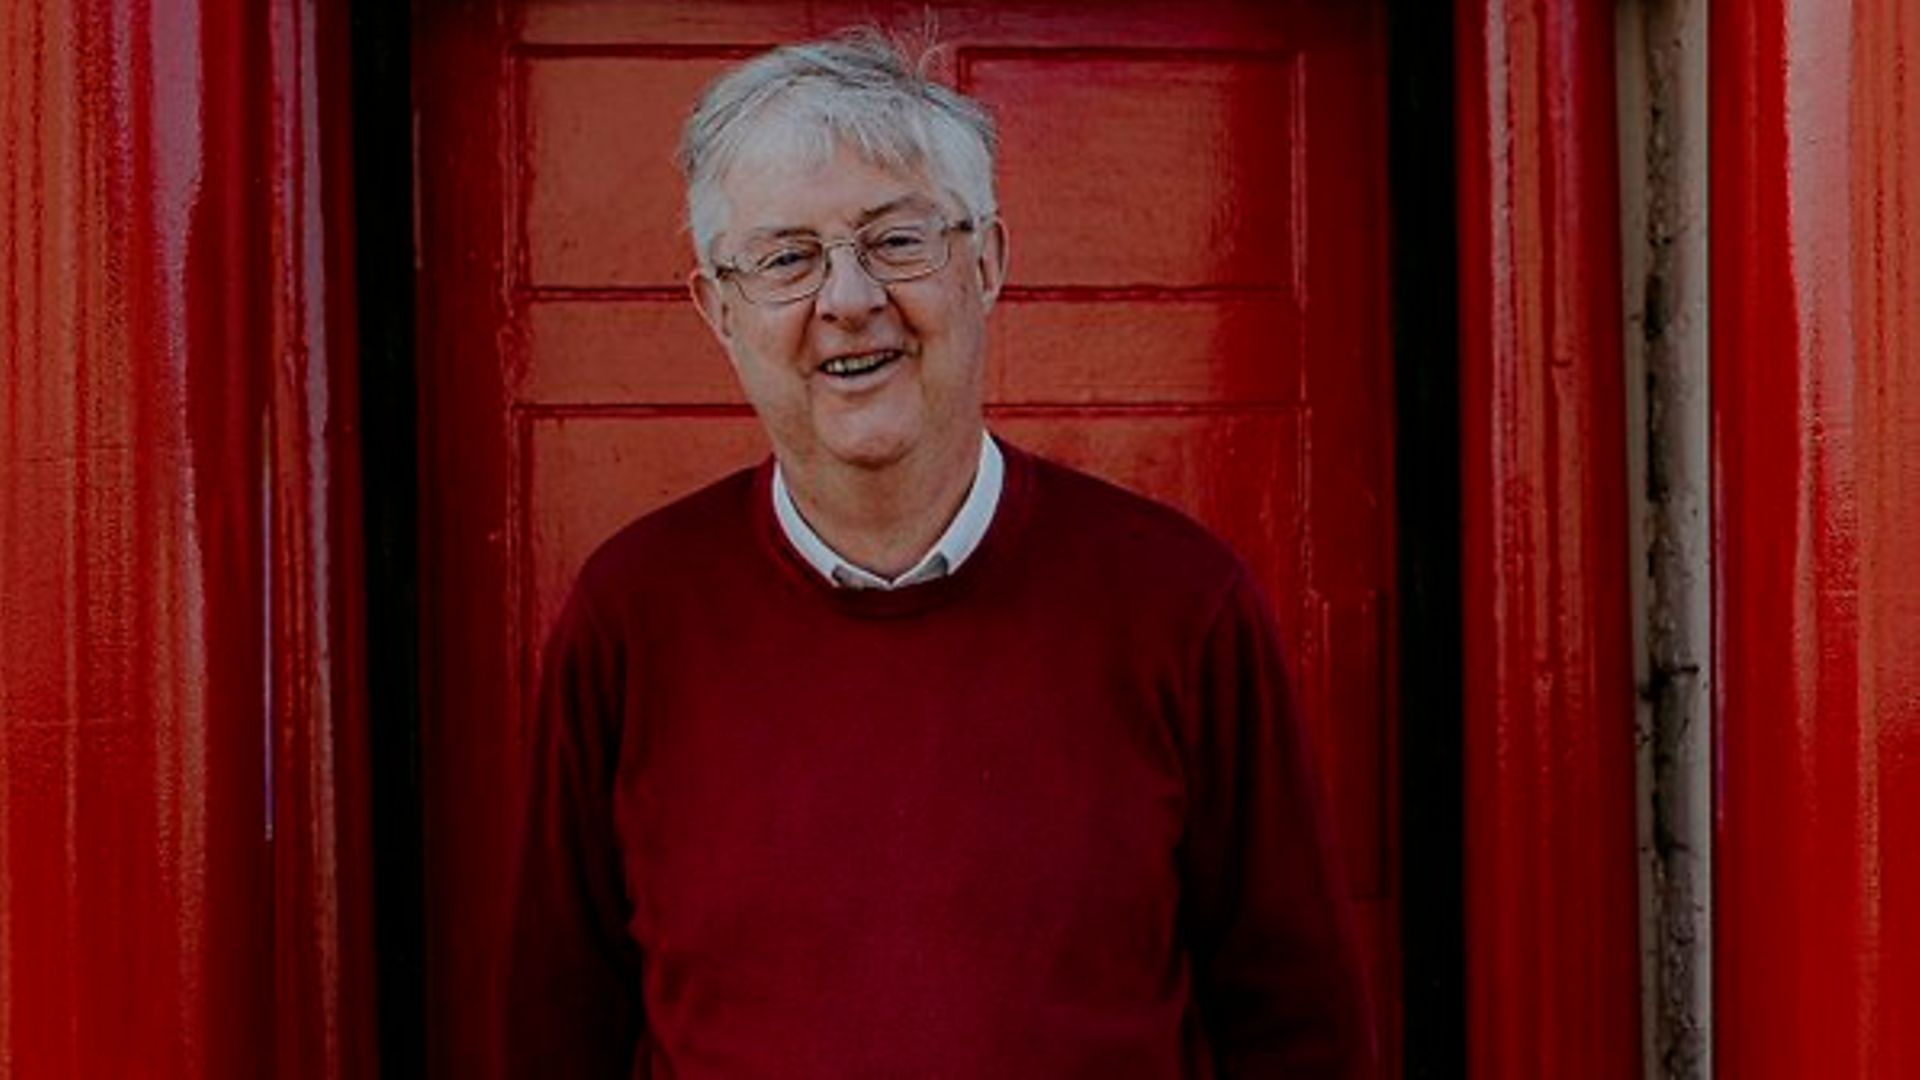 Mark Drakeford poses for a picture after the May elections in Wales - Credit: Twitter